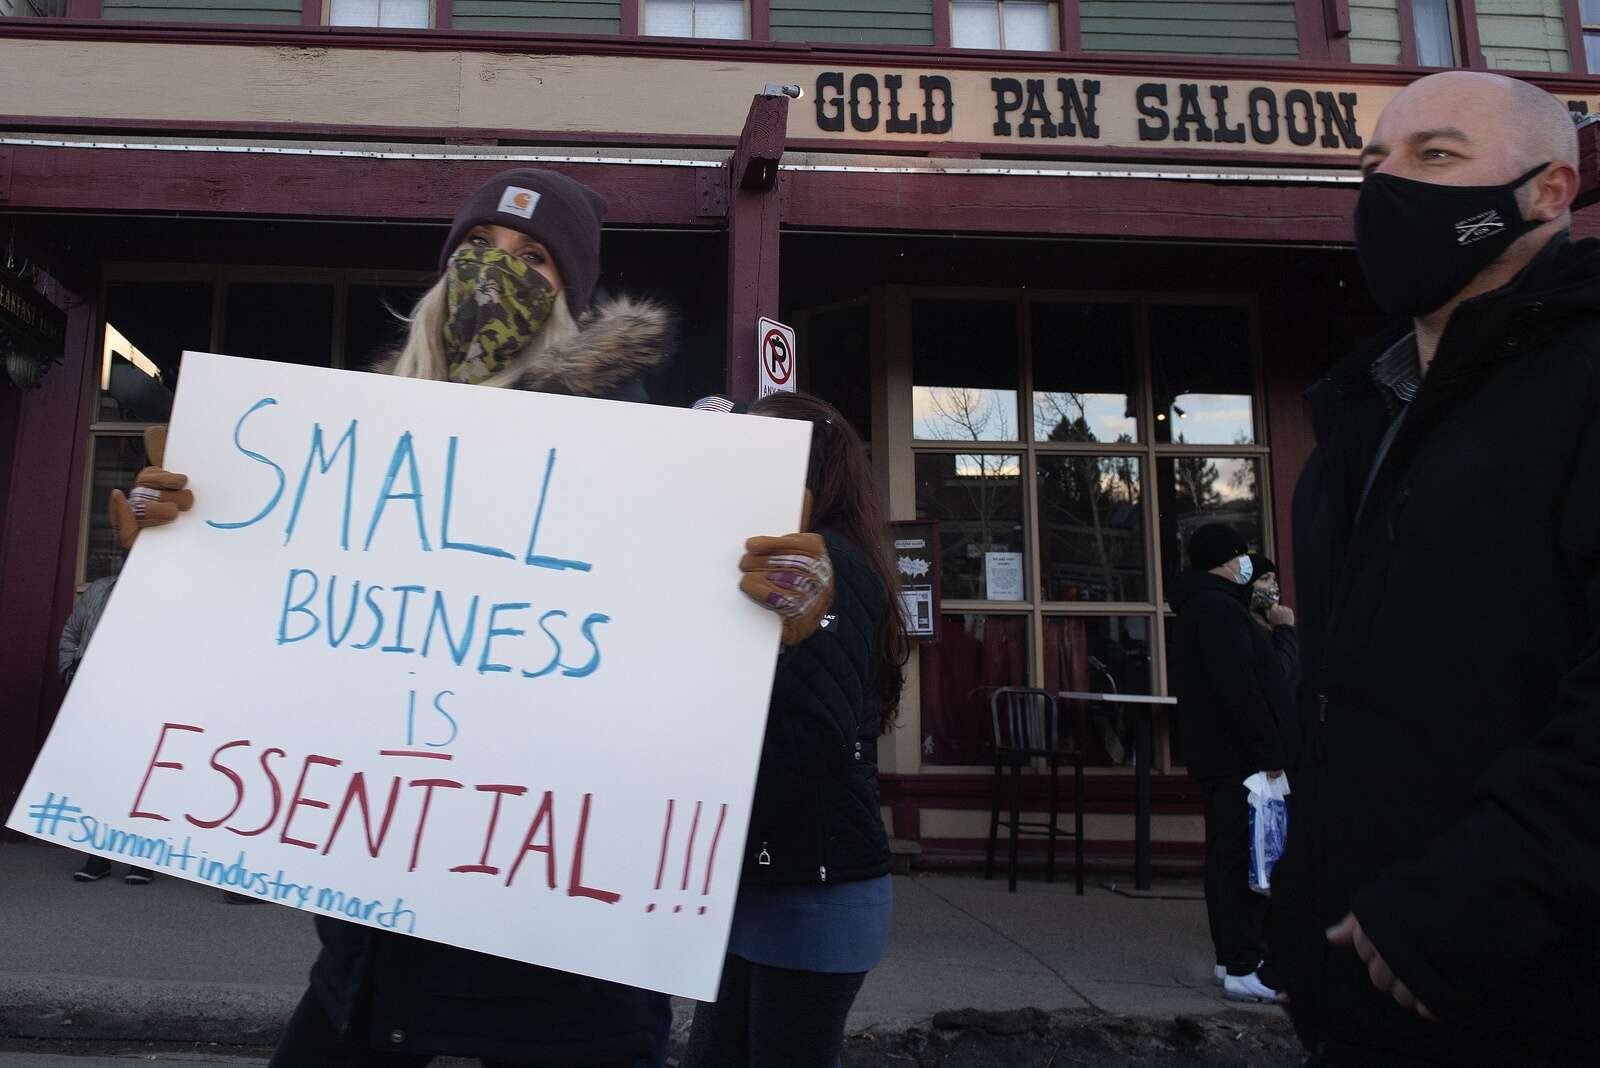 Summit County service industry workers march past the Gold Pan Saloon on Monday, Nov. 23, in Breckenridge while protesting the prohibition of in-person dining at restaurants.